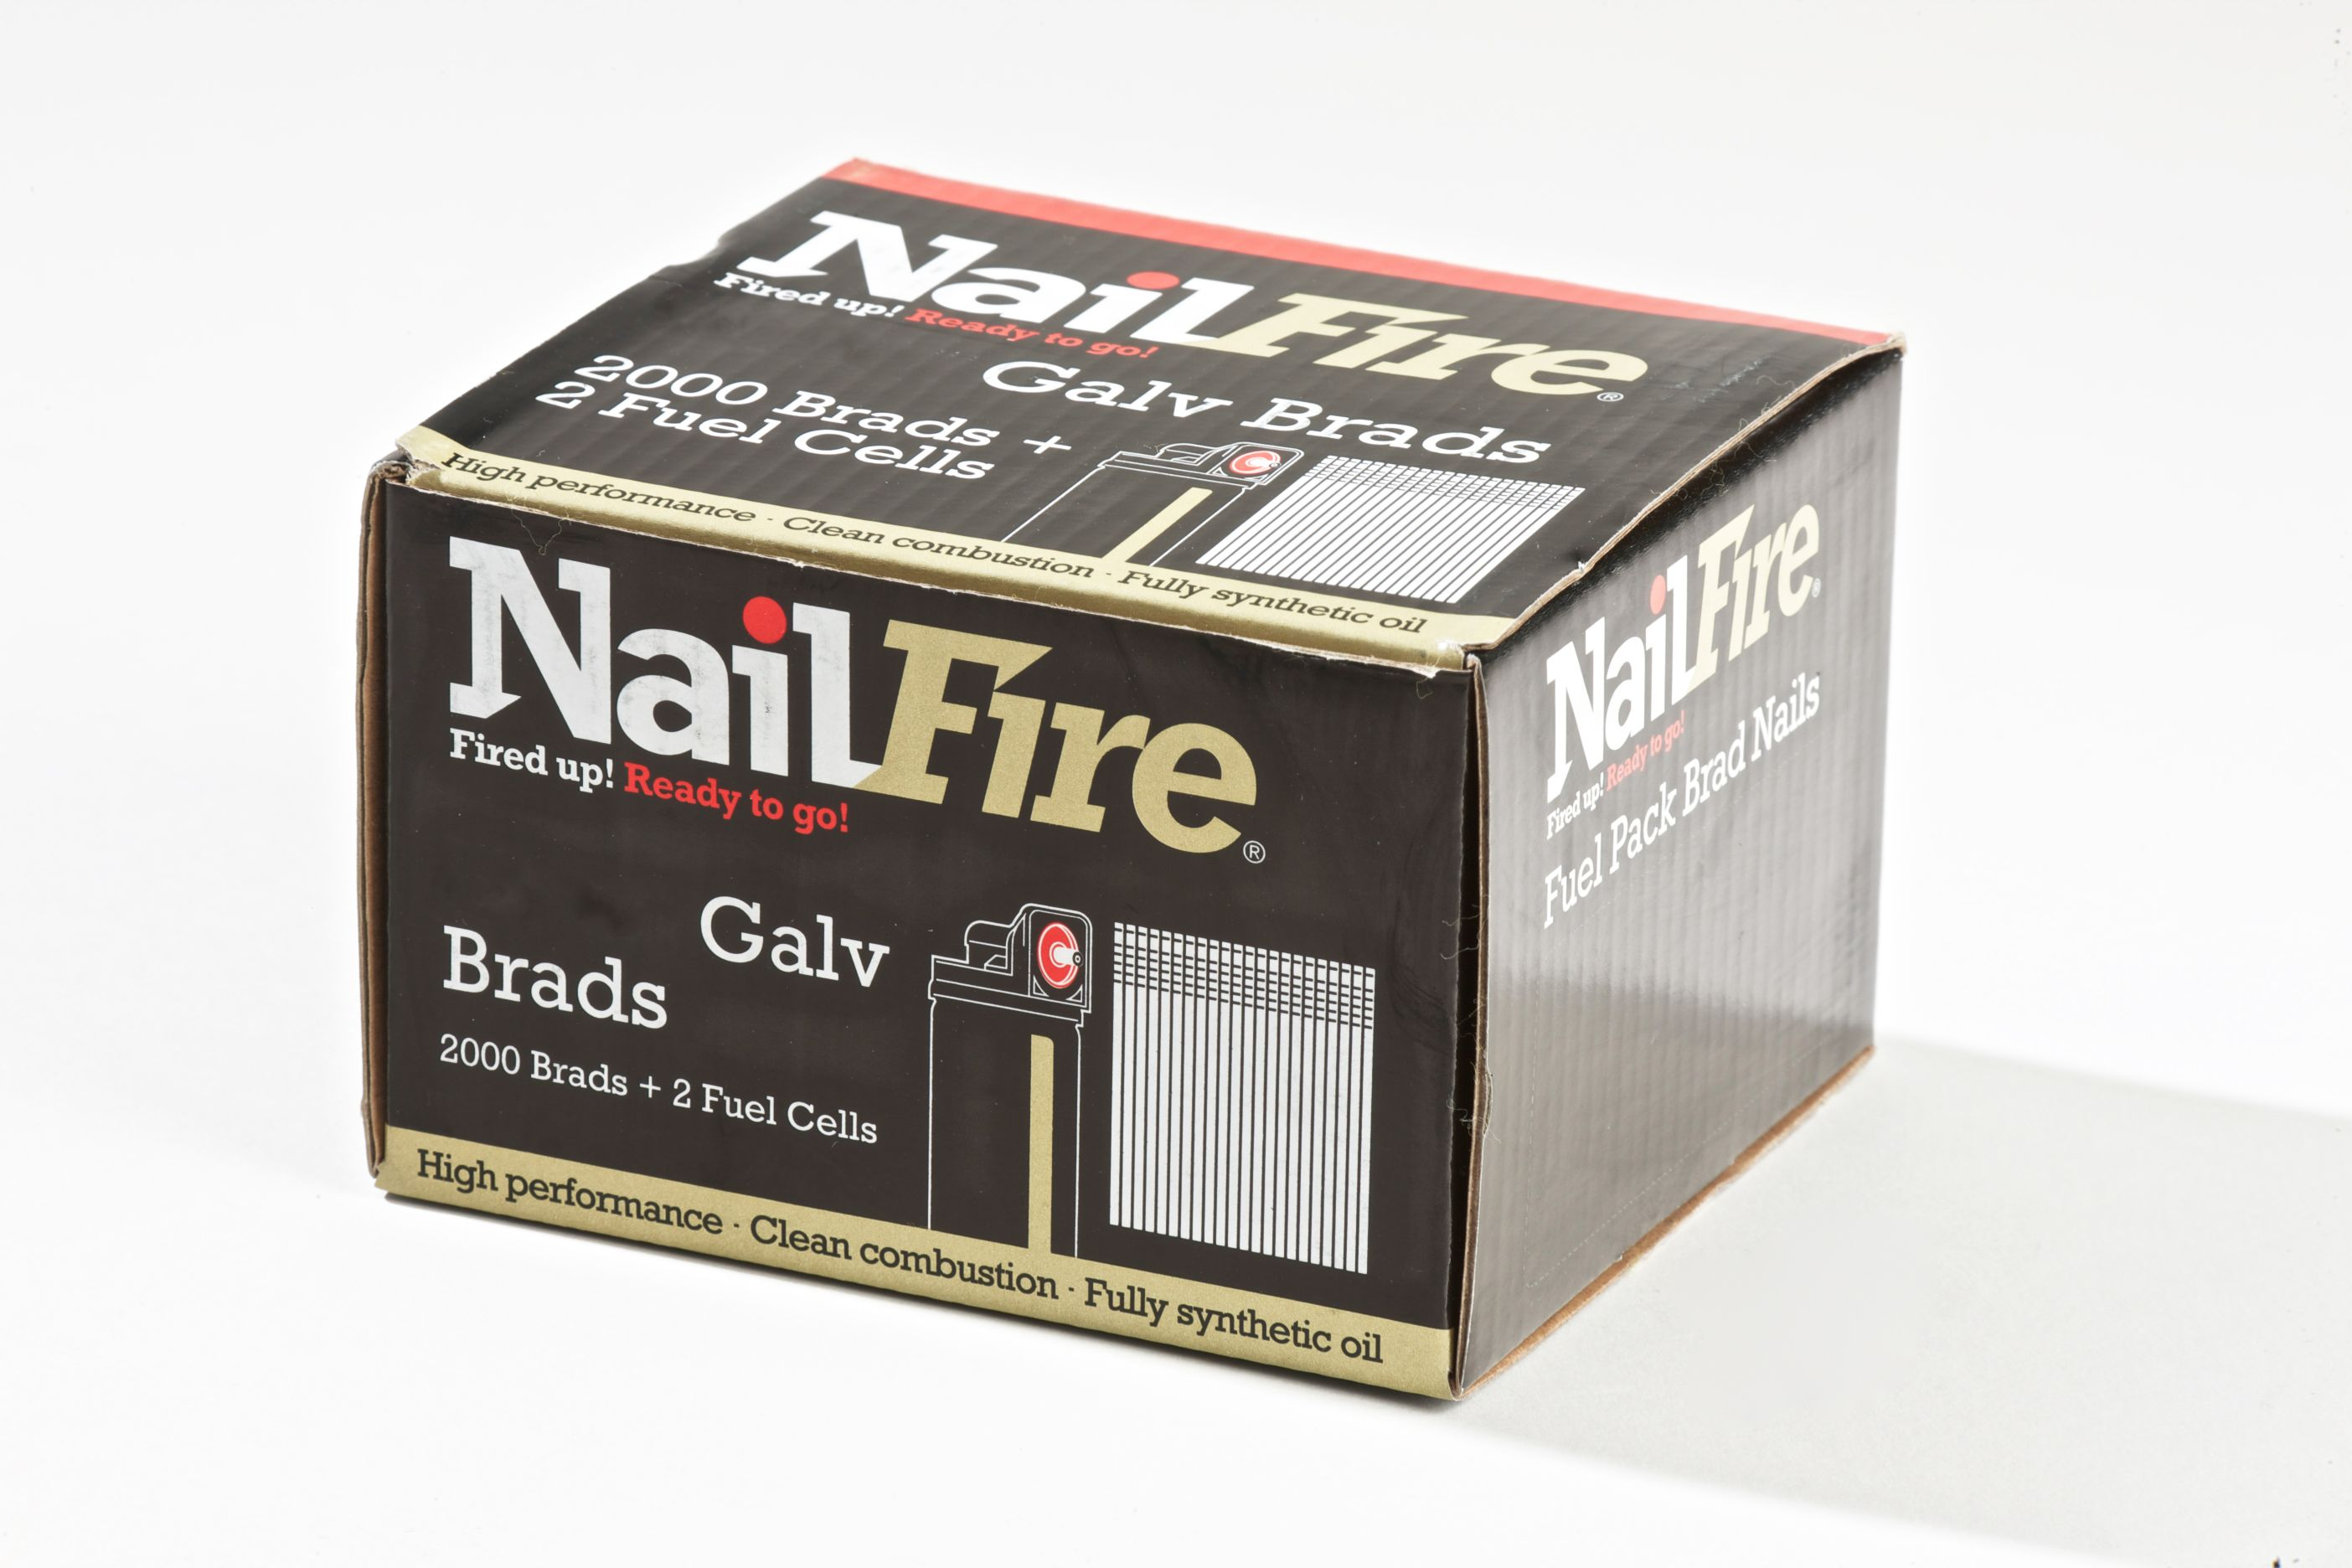 NAILFIRE 2ND FIX STRAIGHT E-GALV BRAD & FUEL PACK 32MM (TUB OF 2000)